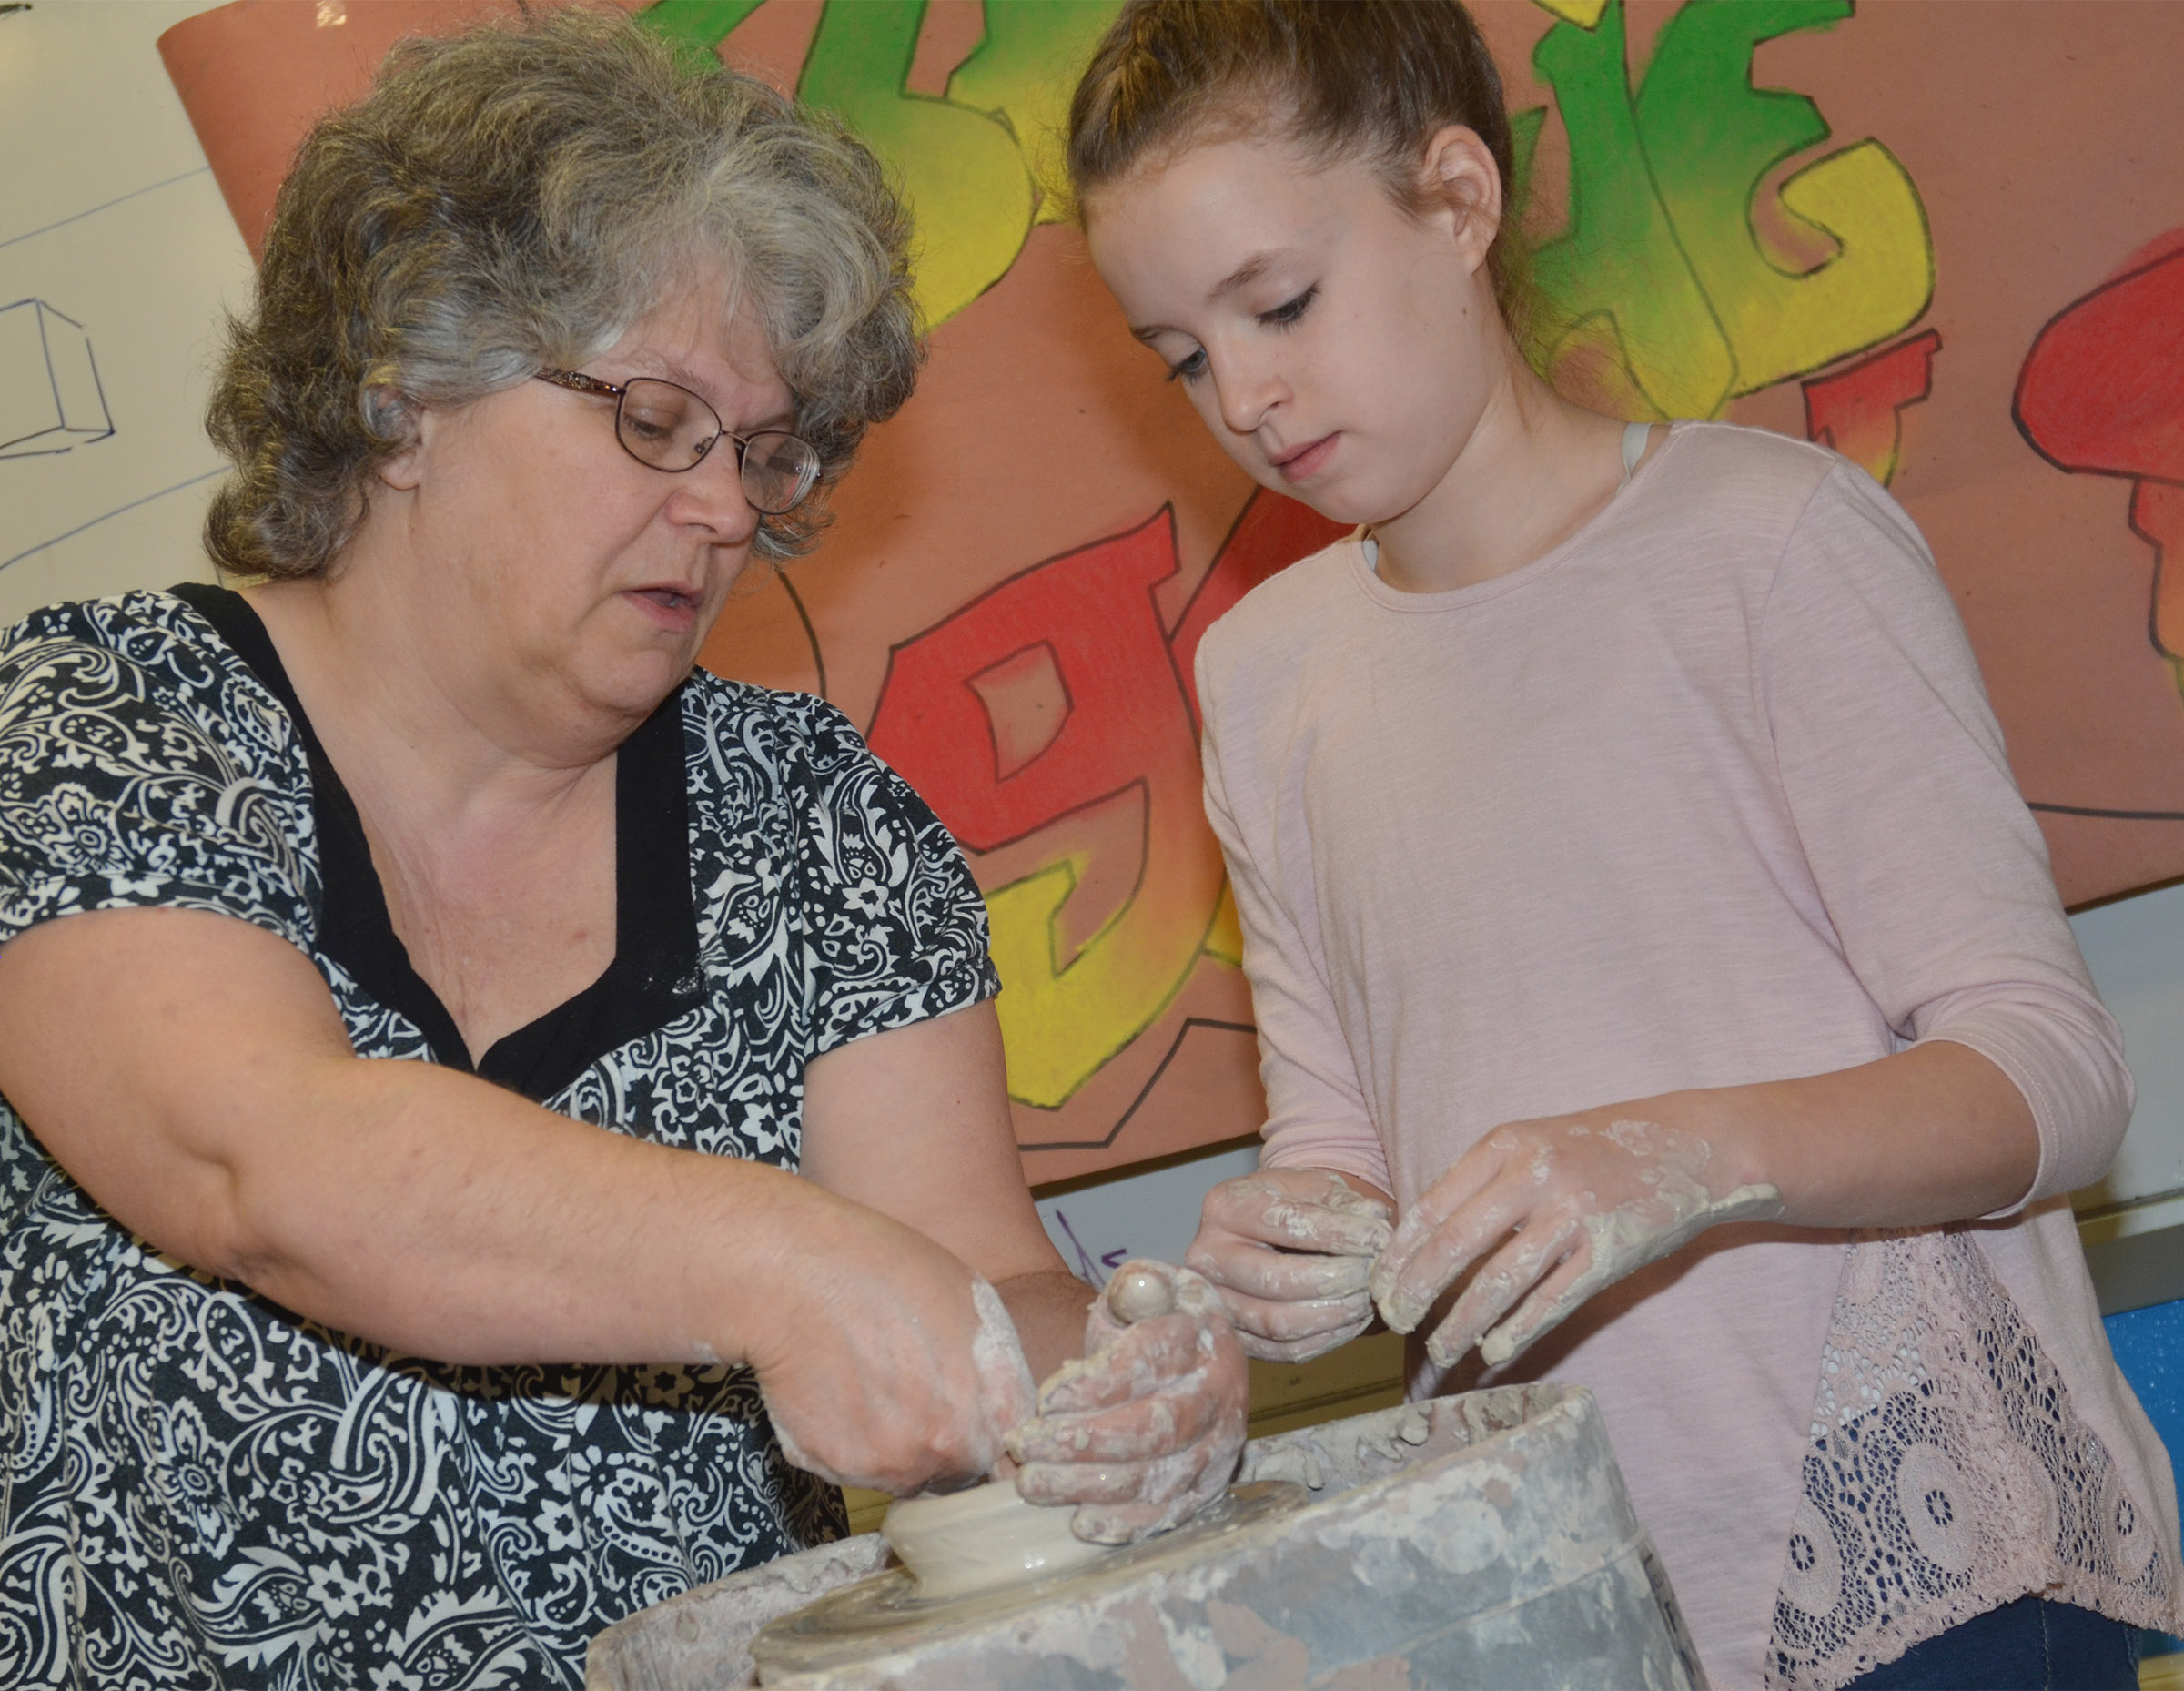 CHS art teacher Jo Ann Harris helps Campbellsville Middle School seventh-grader Rylee Petett as she uses the potter's wheel for the first time.